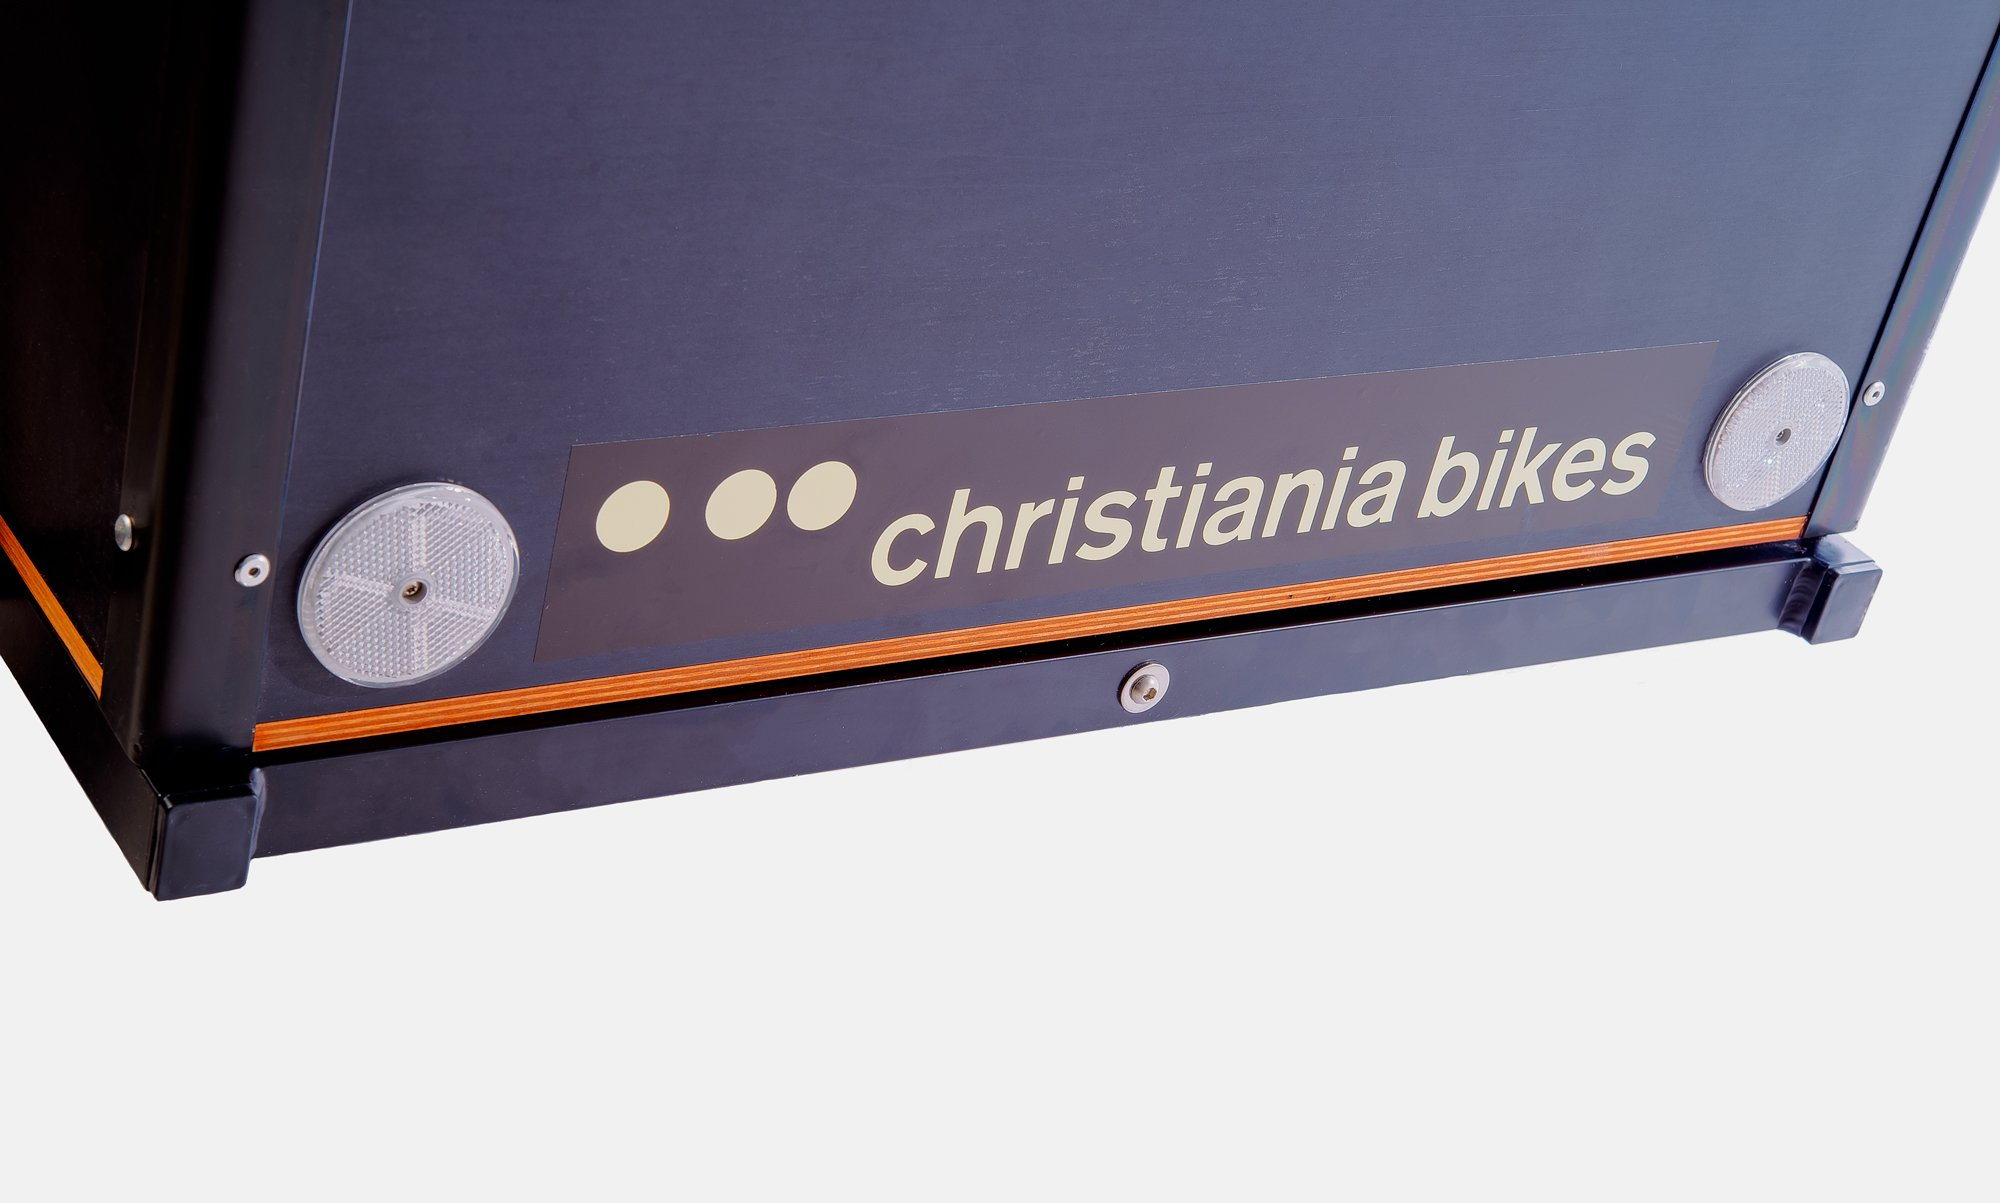 londongreencycles Christiania Classic Light black box detail